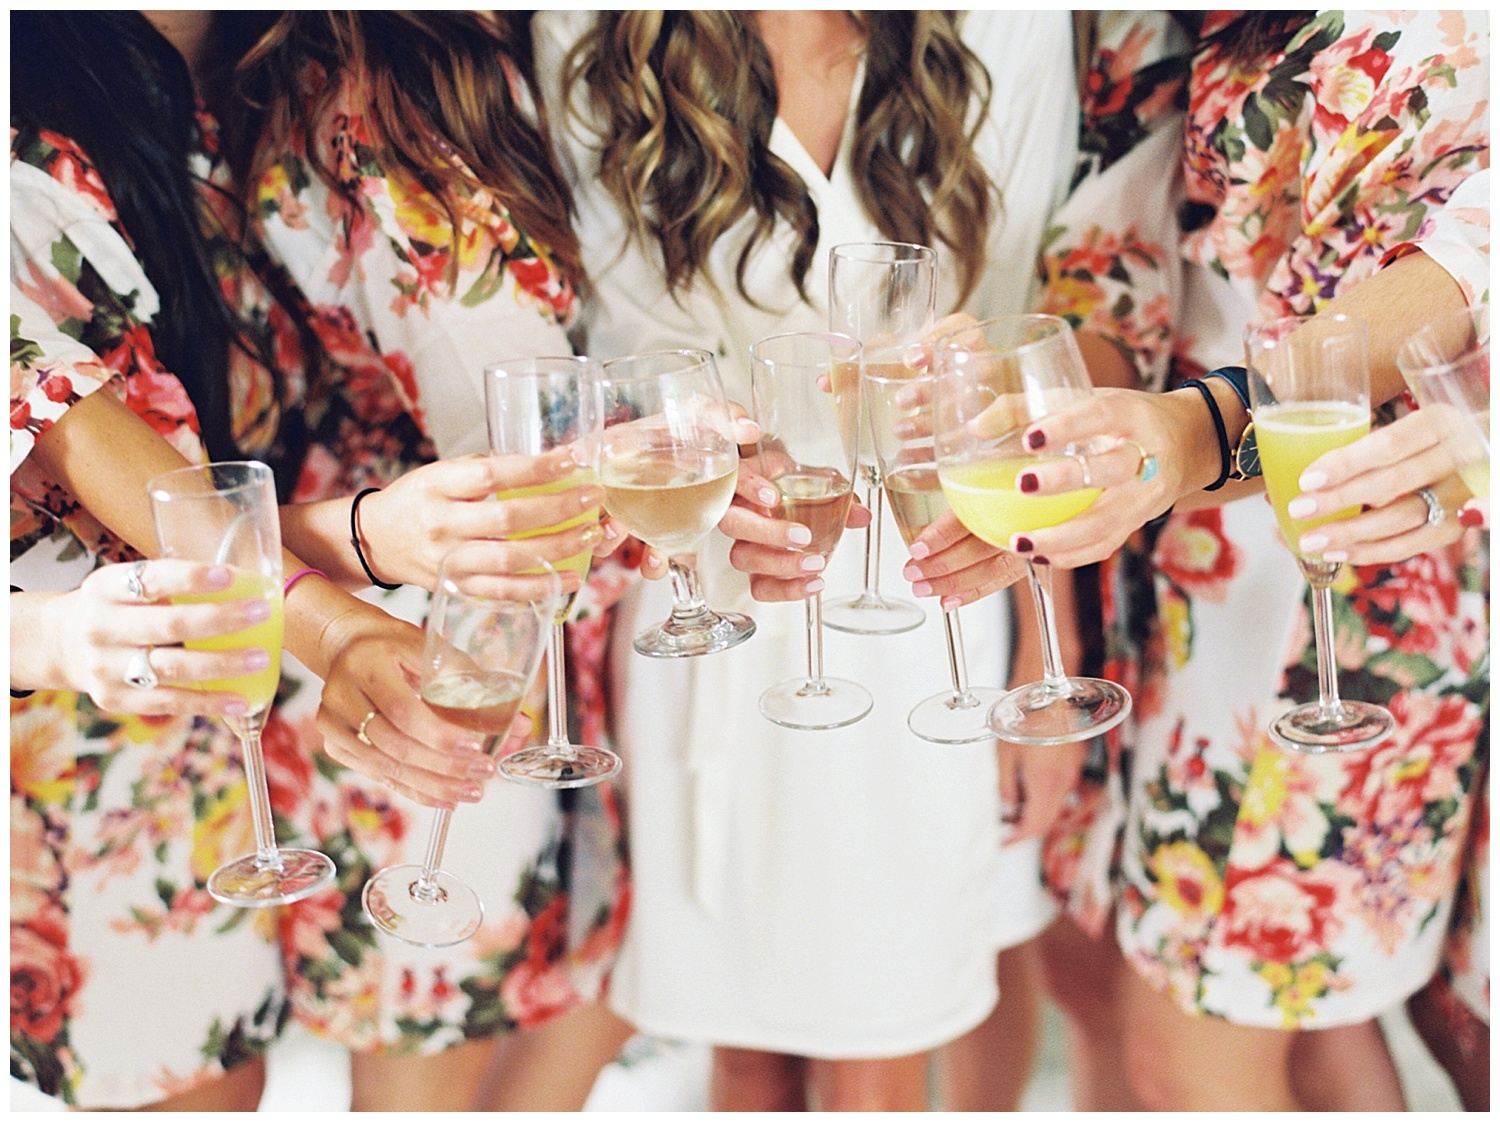 DFW Wedding Venues | Getting Ready Tips from The White Sparrow